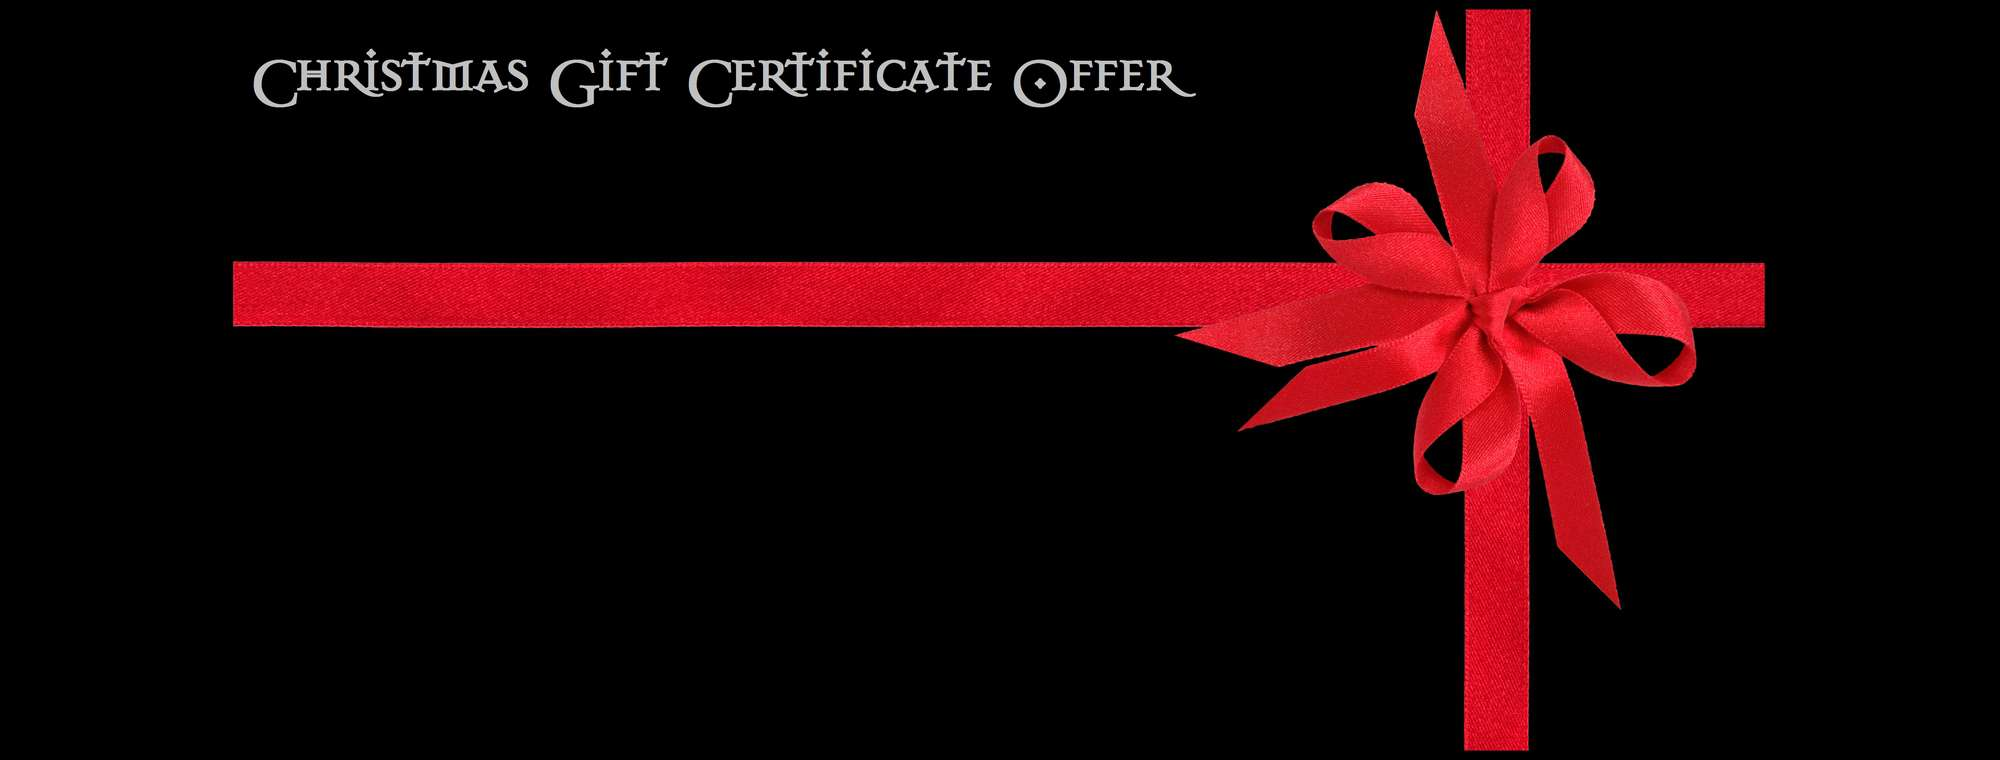 Xmas Gift Certificate Offer!